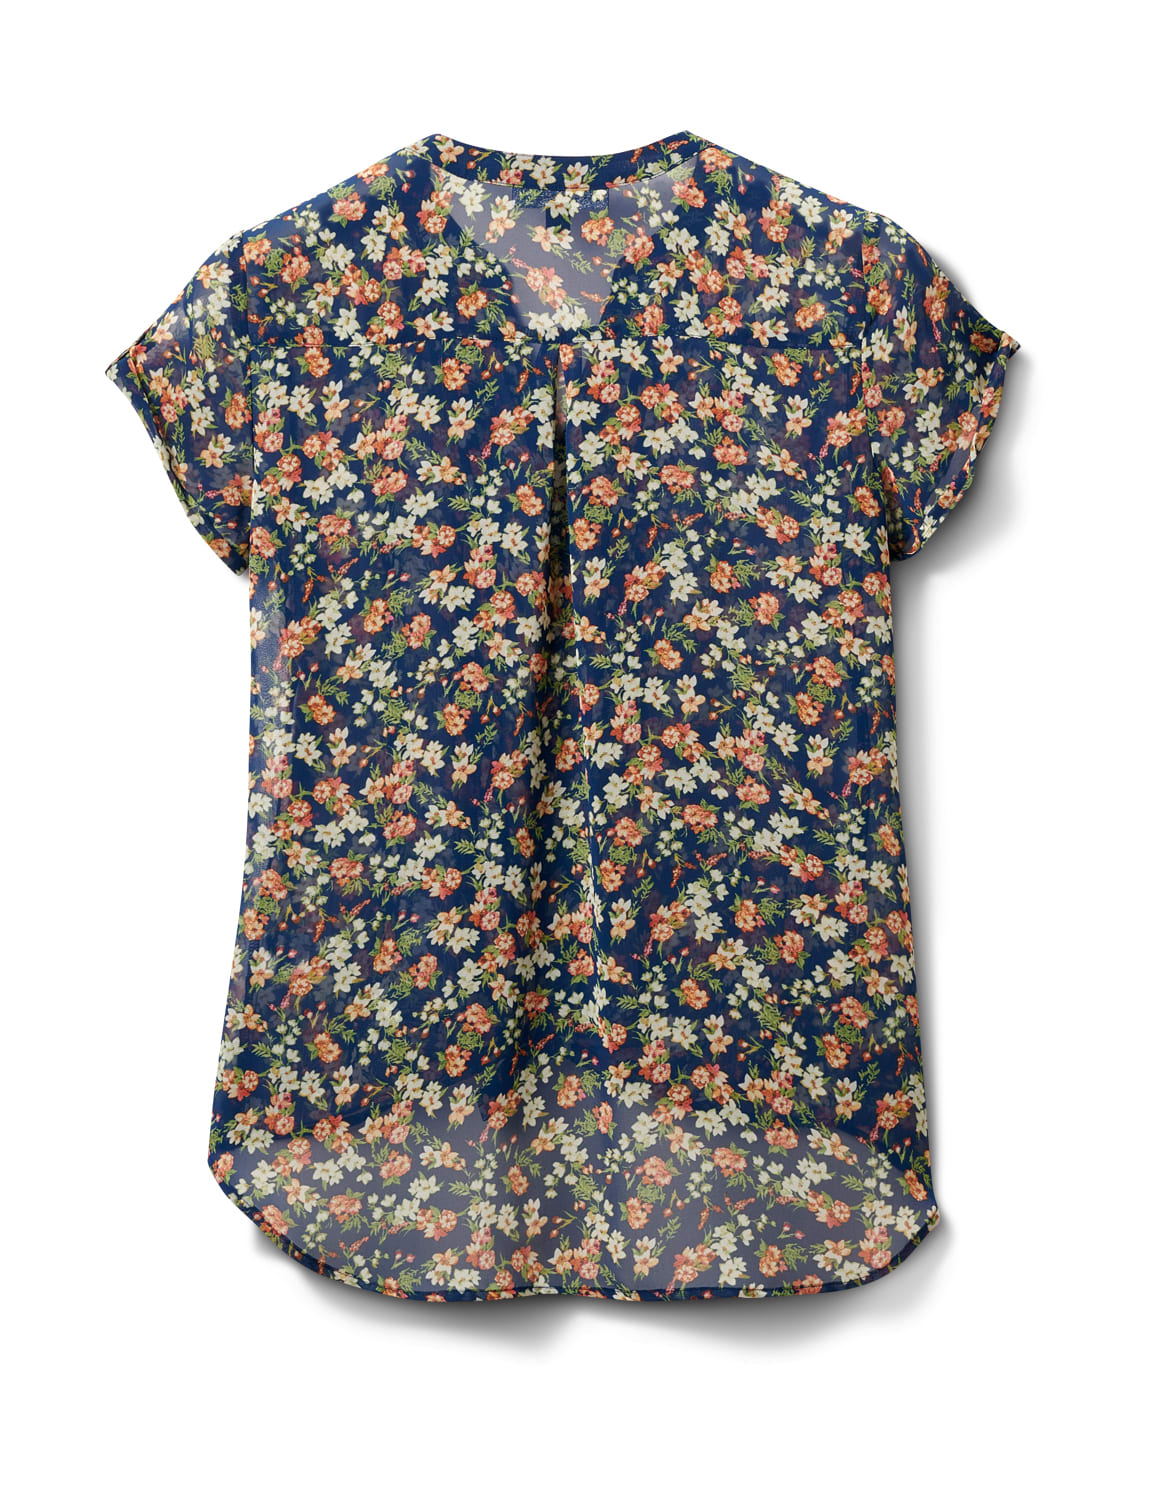 Floral Button Front Blouse - Navy/Coral/Green - Back